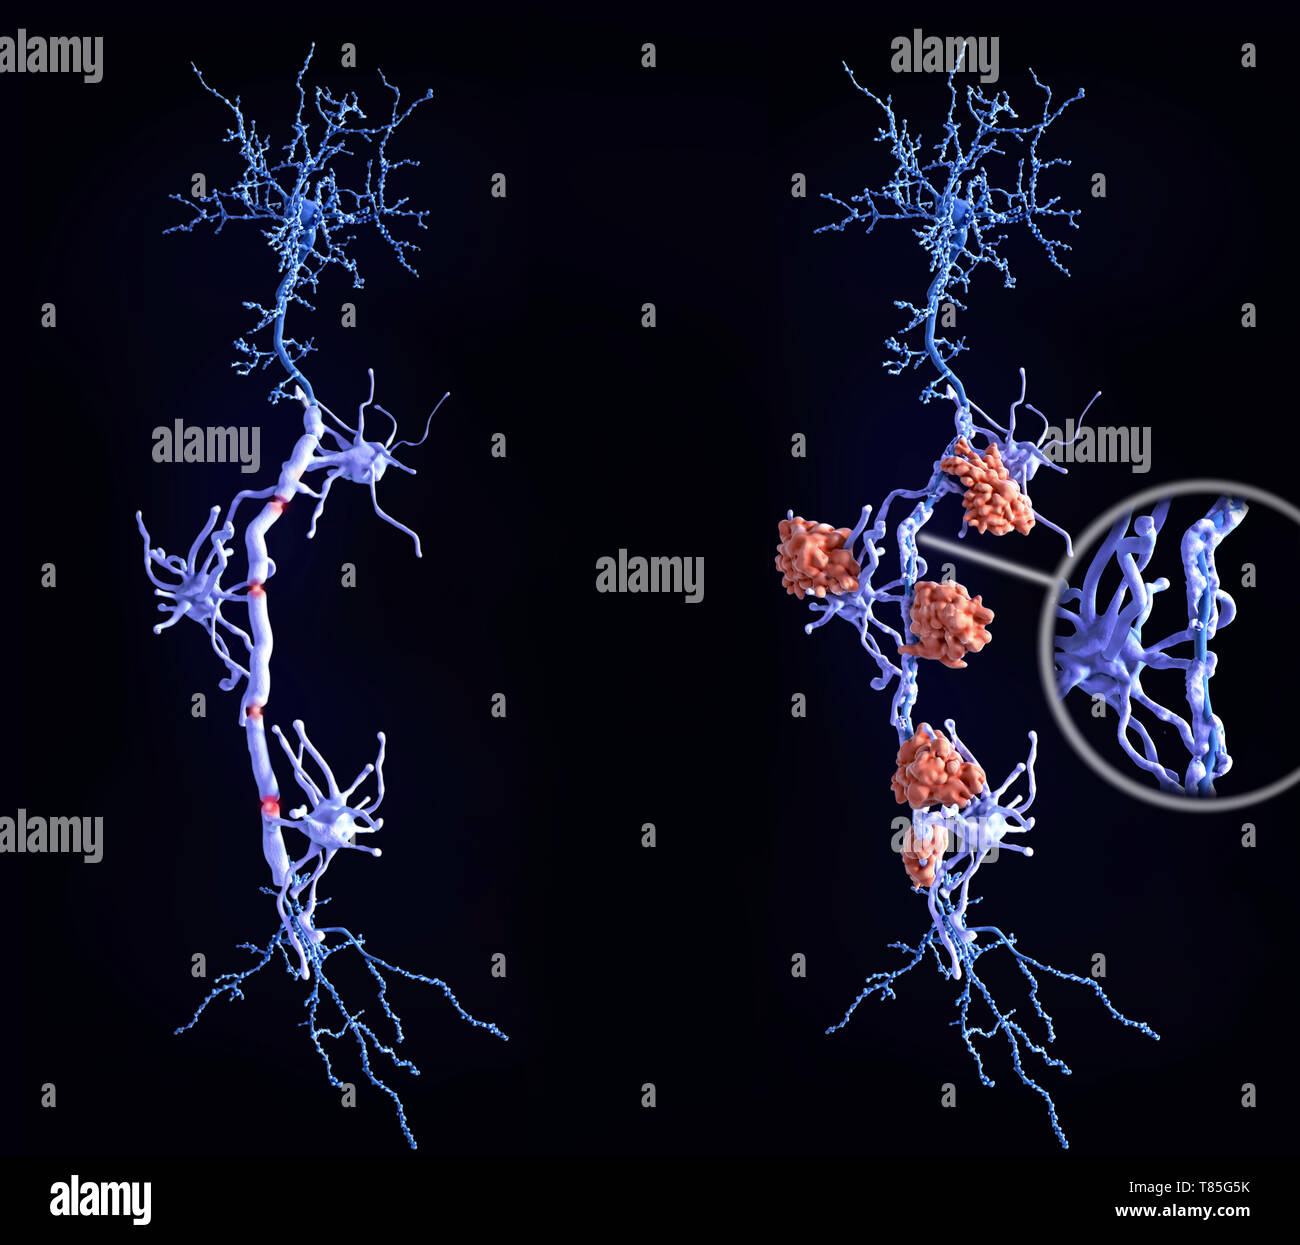 Healthy neurons and nerve damage in multiple sclerosis - Stock Image